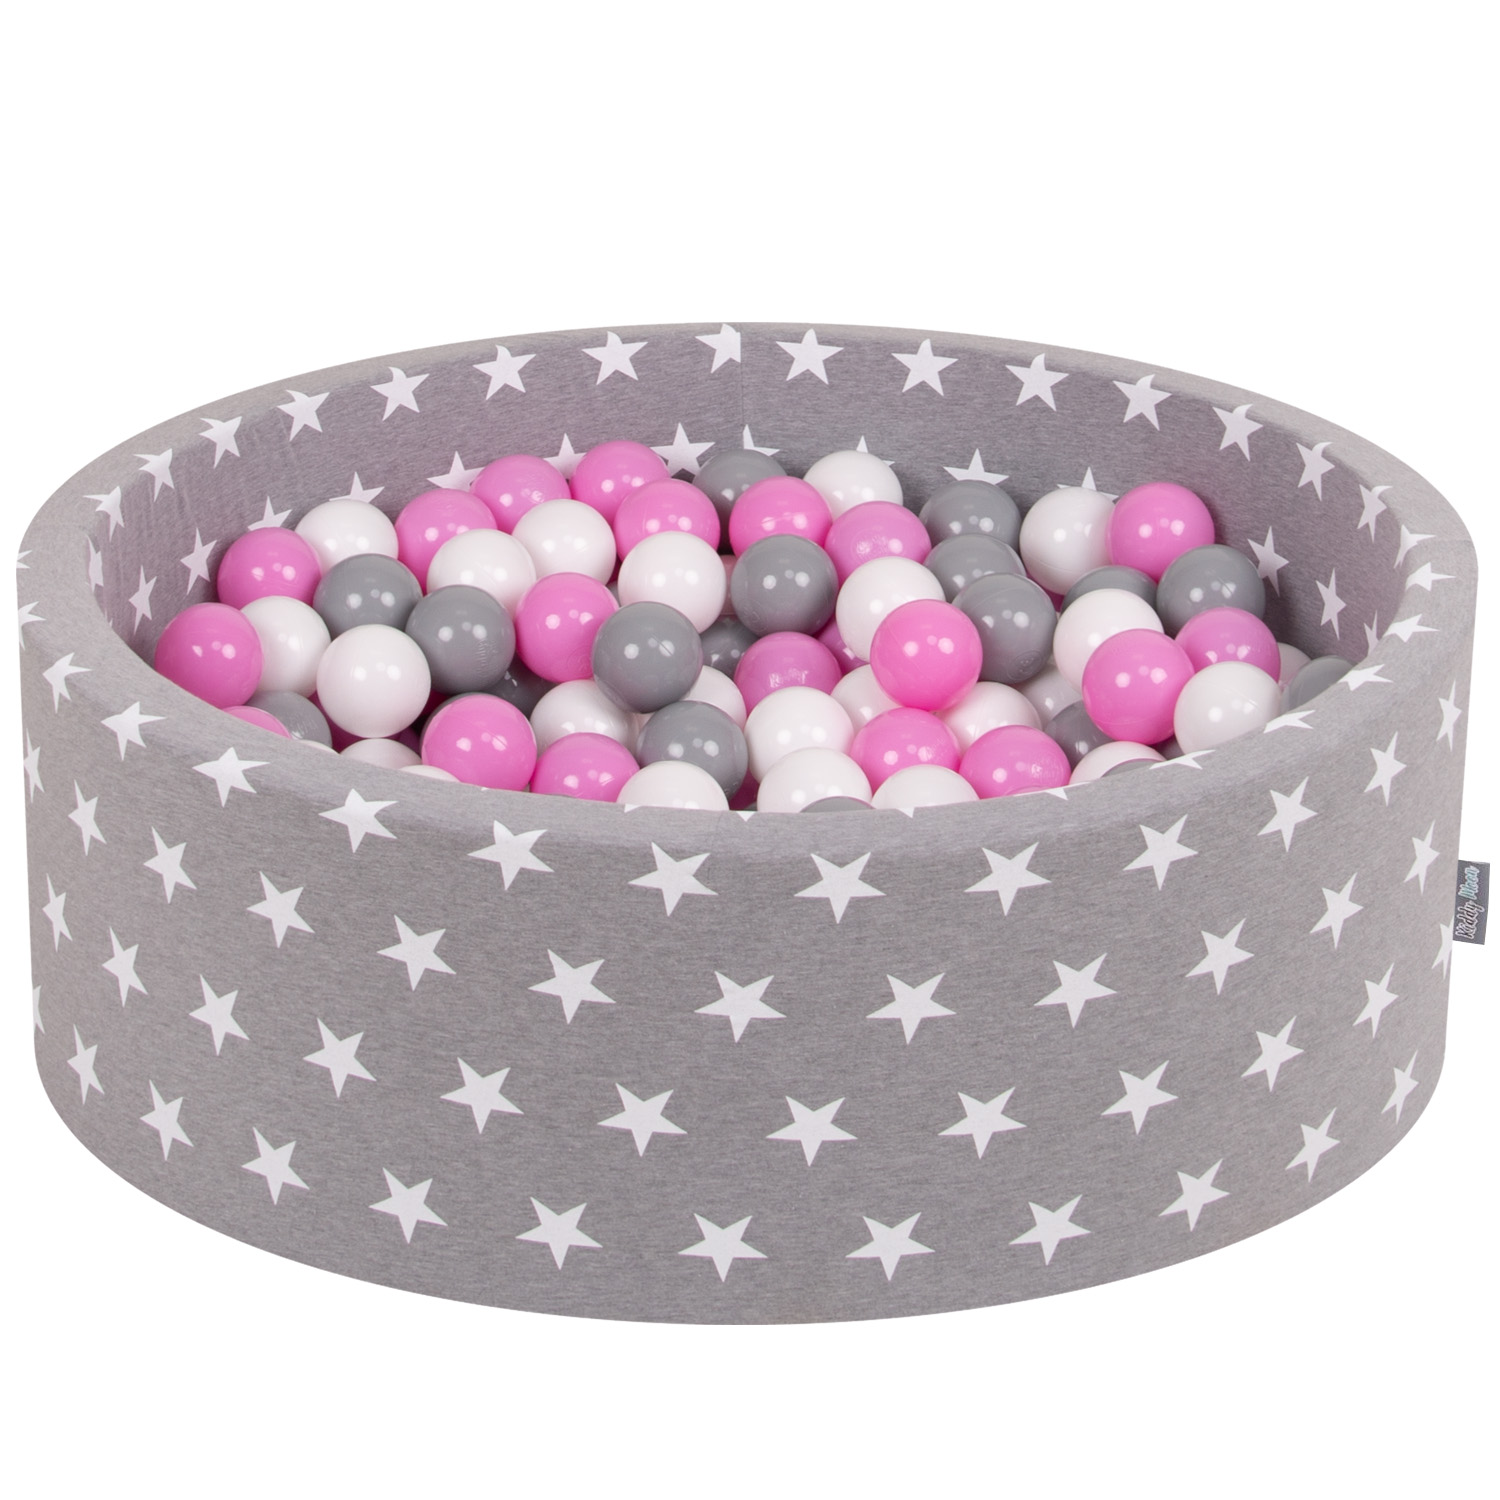 KiddyMoon New Soft Baby Ball Pit Foam Pool 90x30 with 200//300 Balls Crown